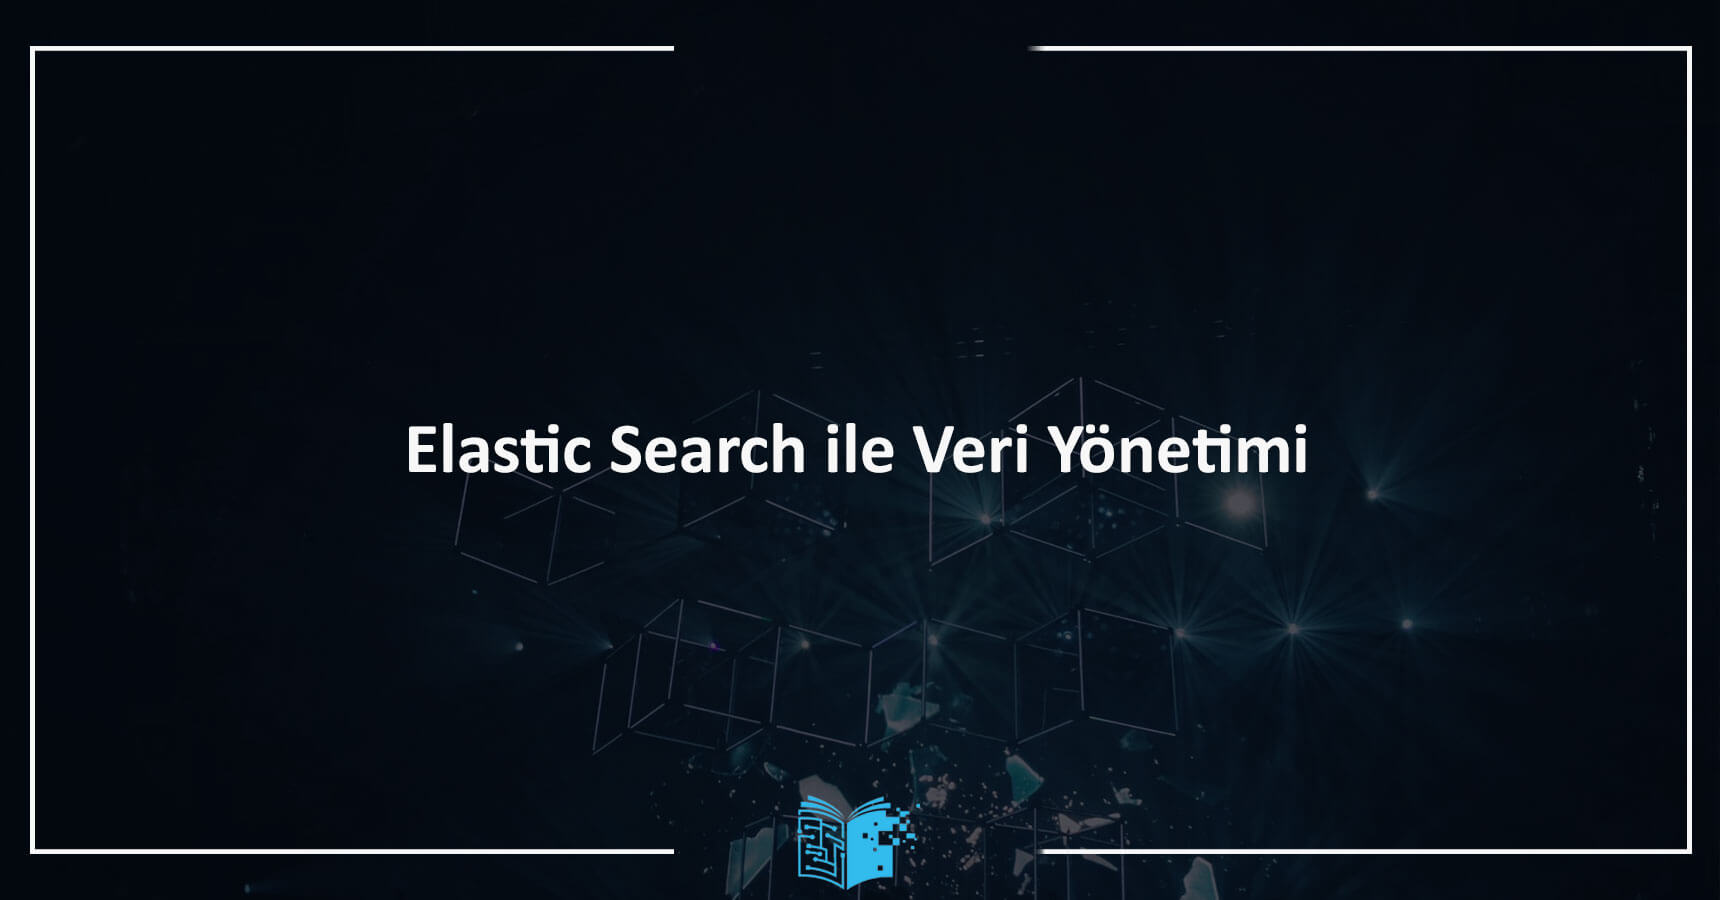 Elastic Search ile Veri Yönetimi